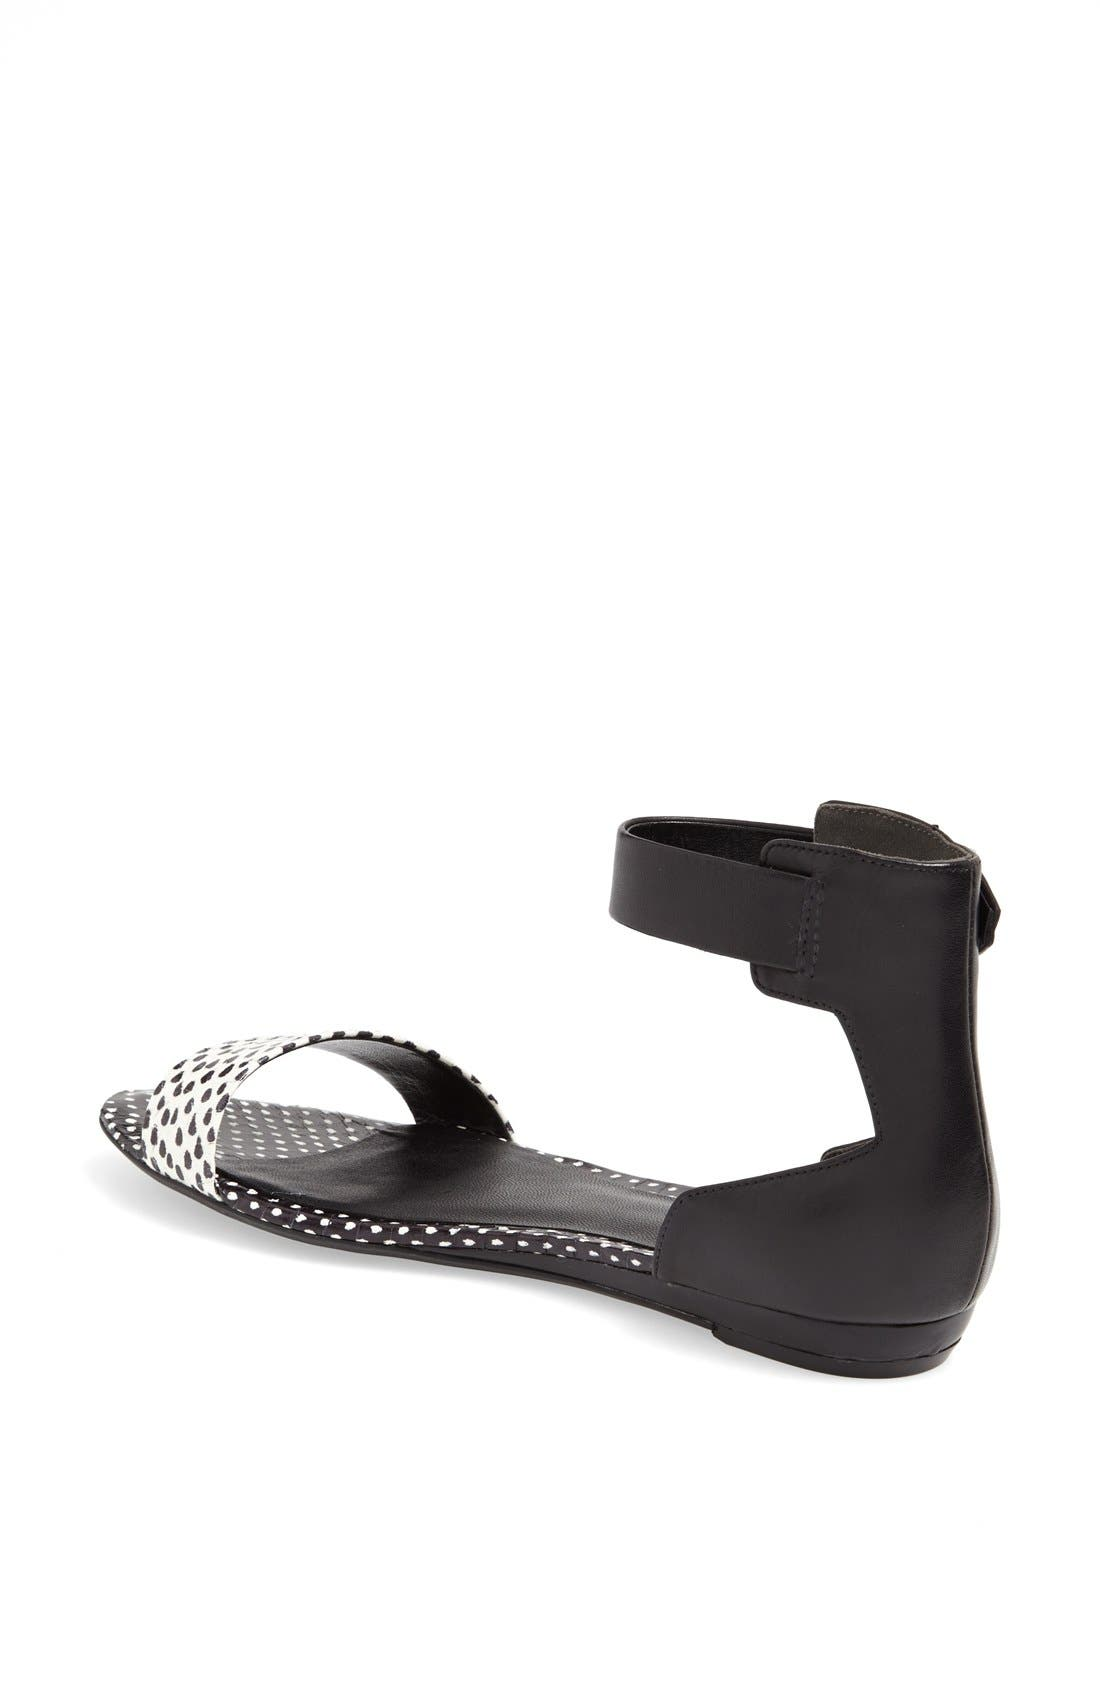 Alternate Image 2  - Kenneth Cole New York 'Essex' Sandal